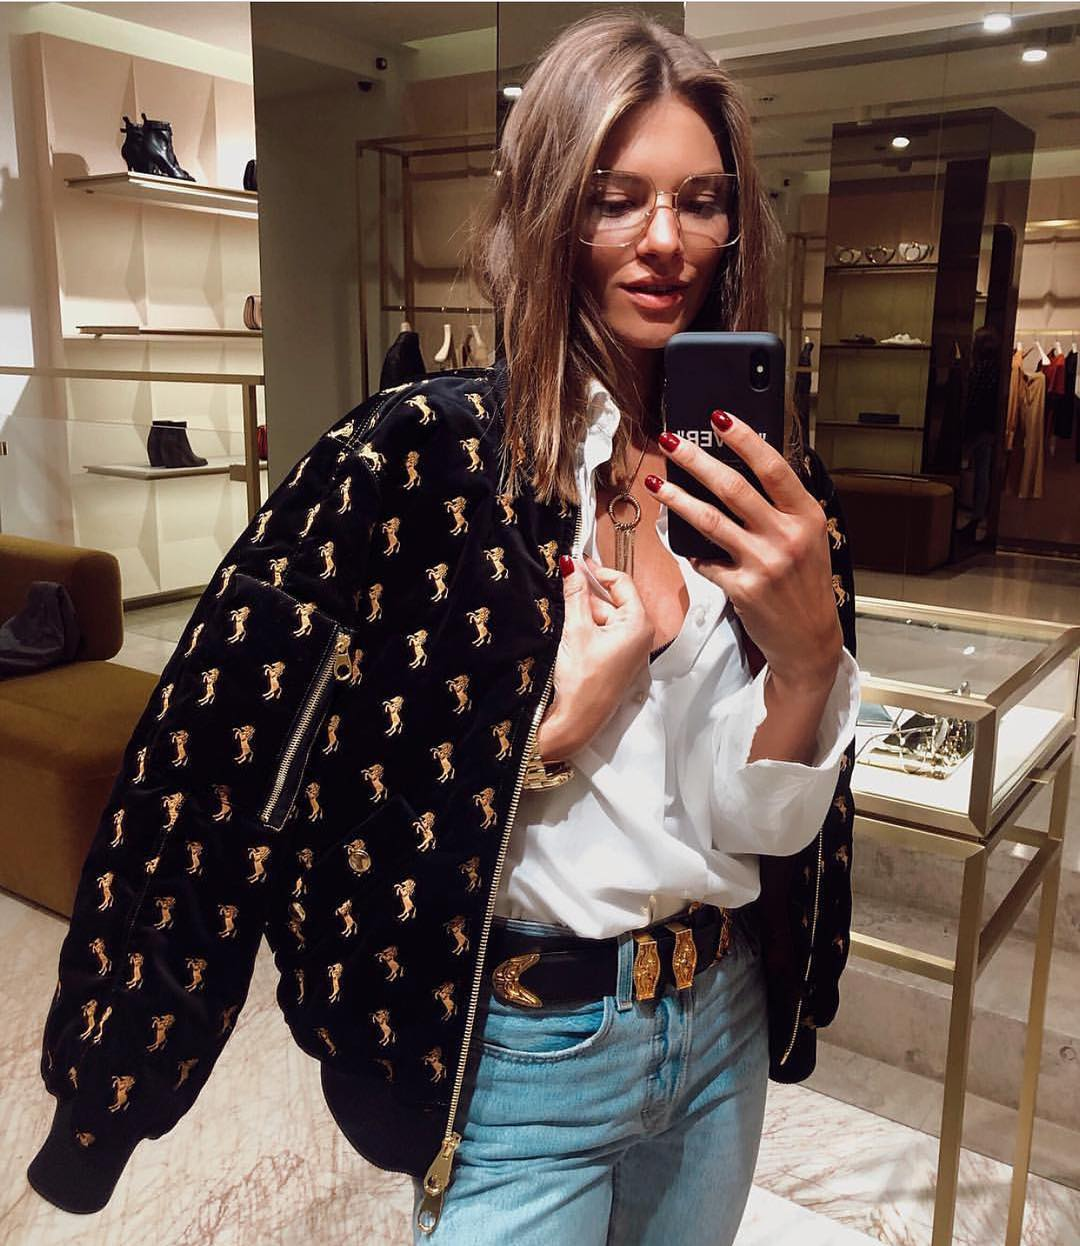 Velvet Bomber With Horse Embroidered Styled With White Top And Jeans 2019